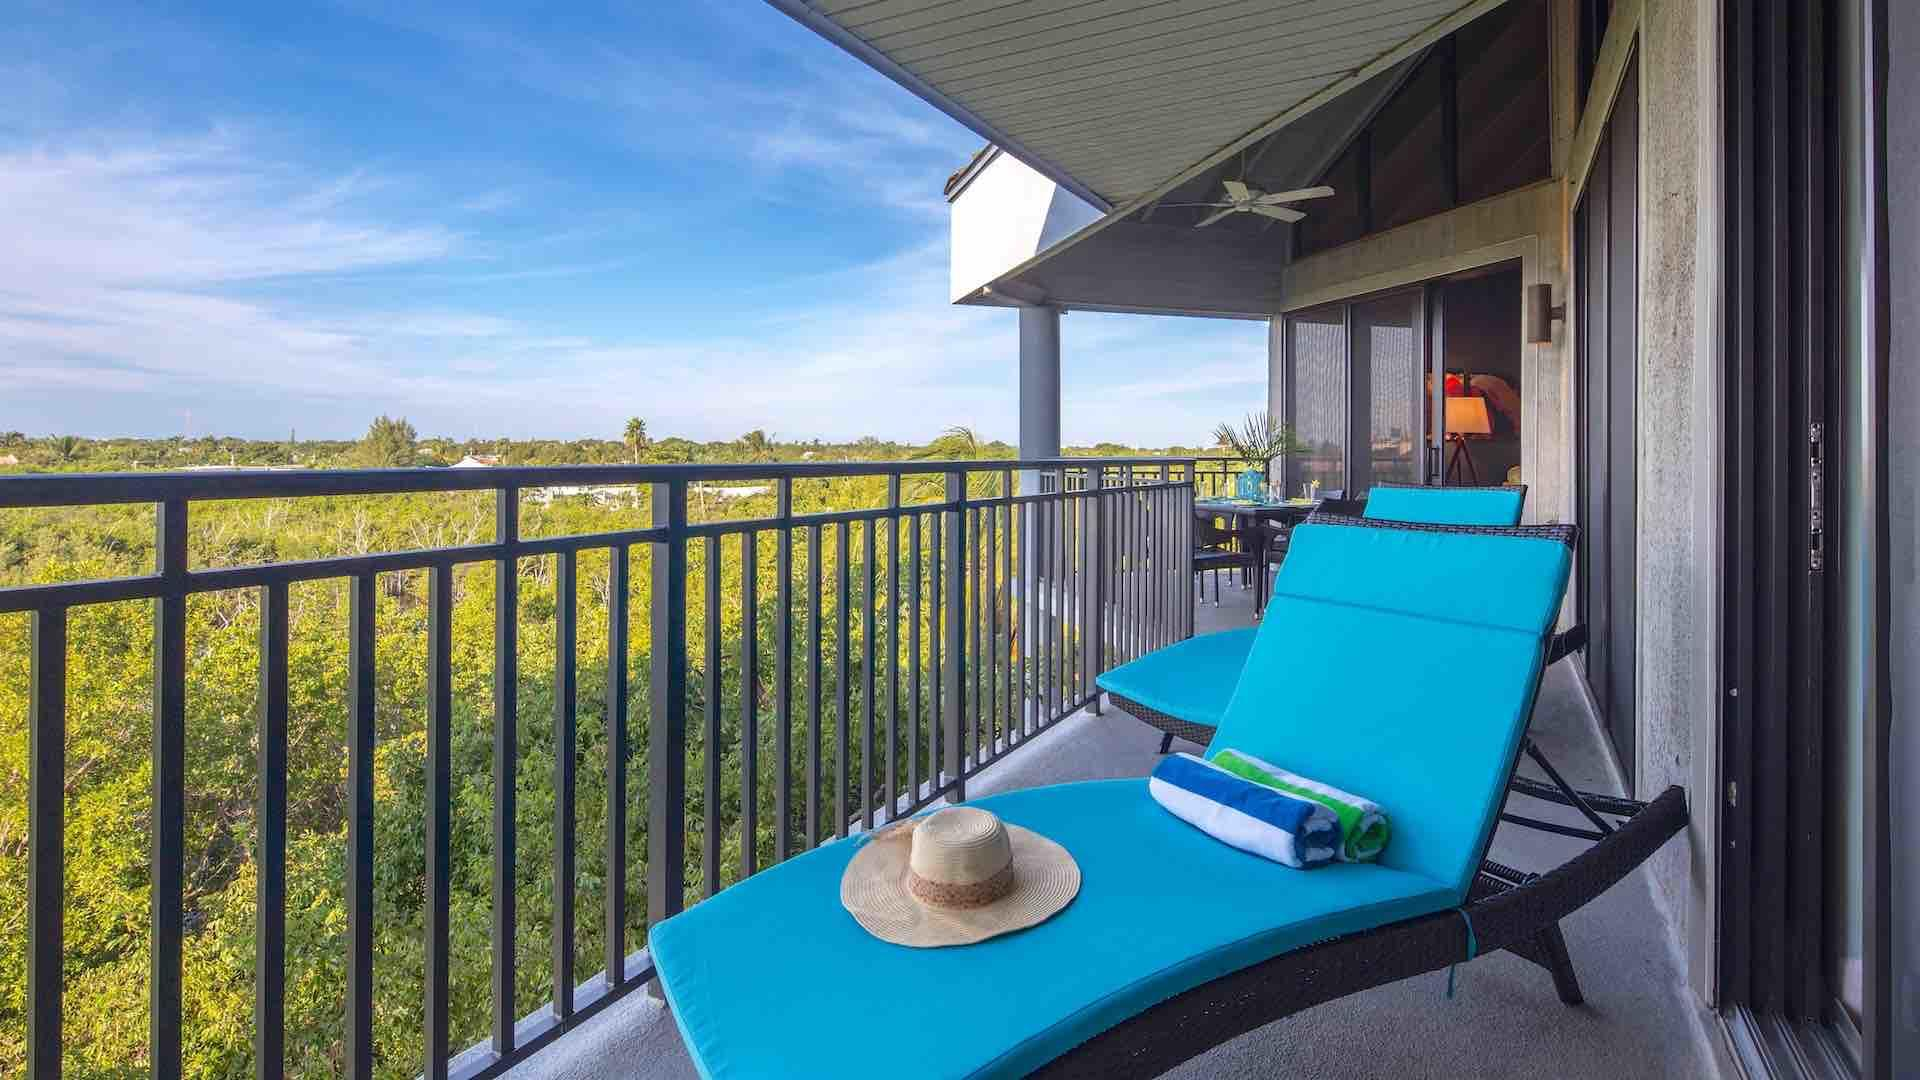 There are two chaise lounges located on the balcony for relaxing...